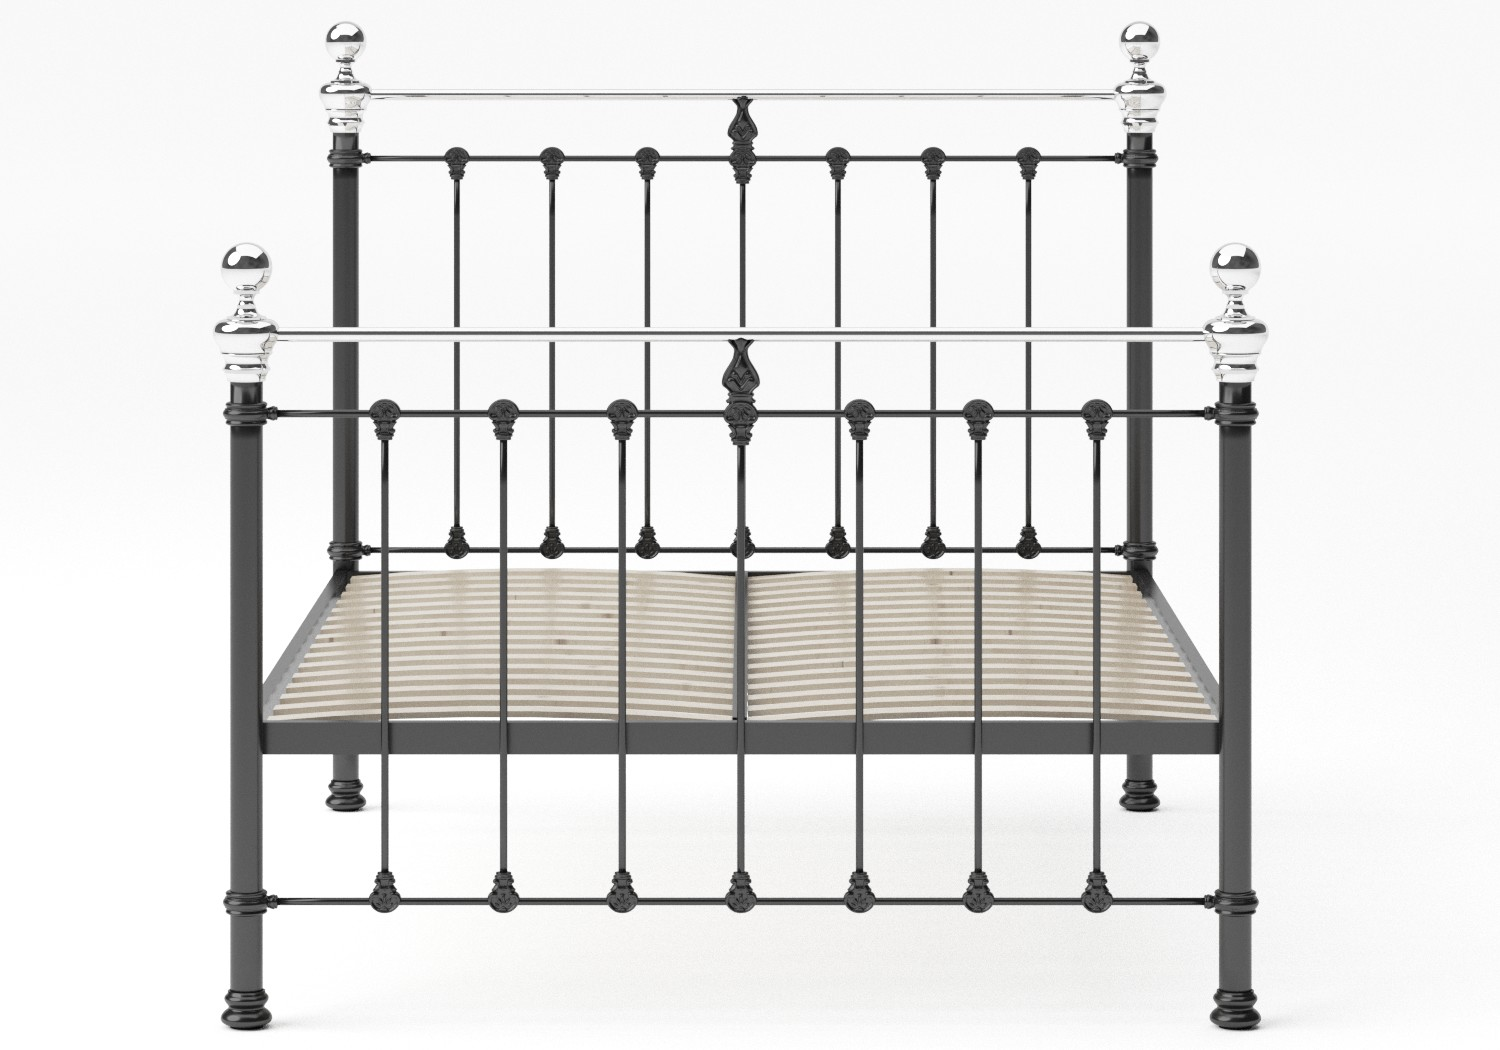 Hamilton Iron/Metal Bed in Satin Black with Chrome details shown with slatted frame